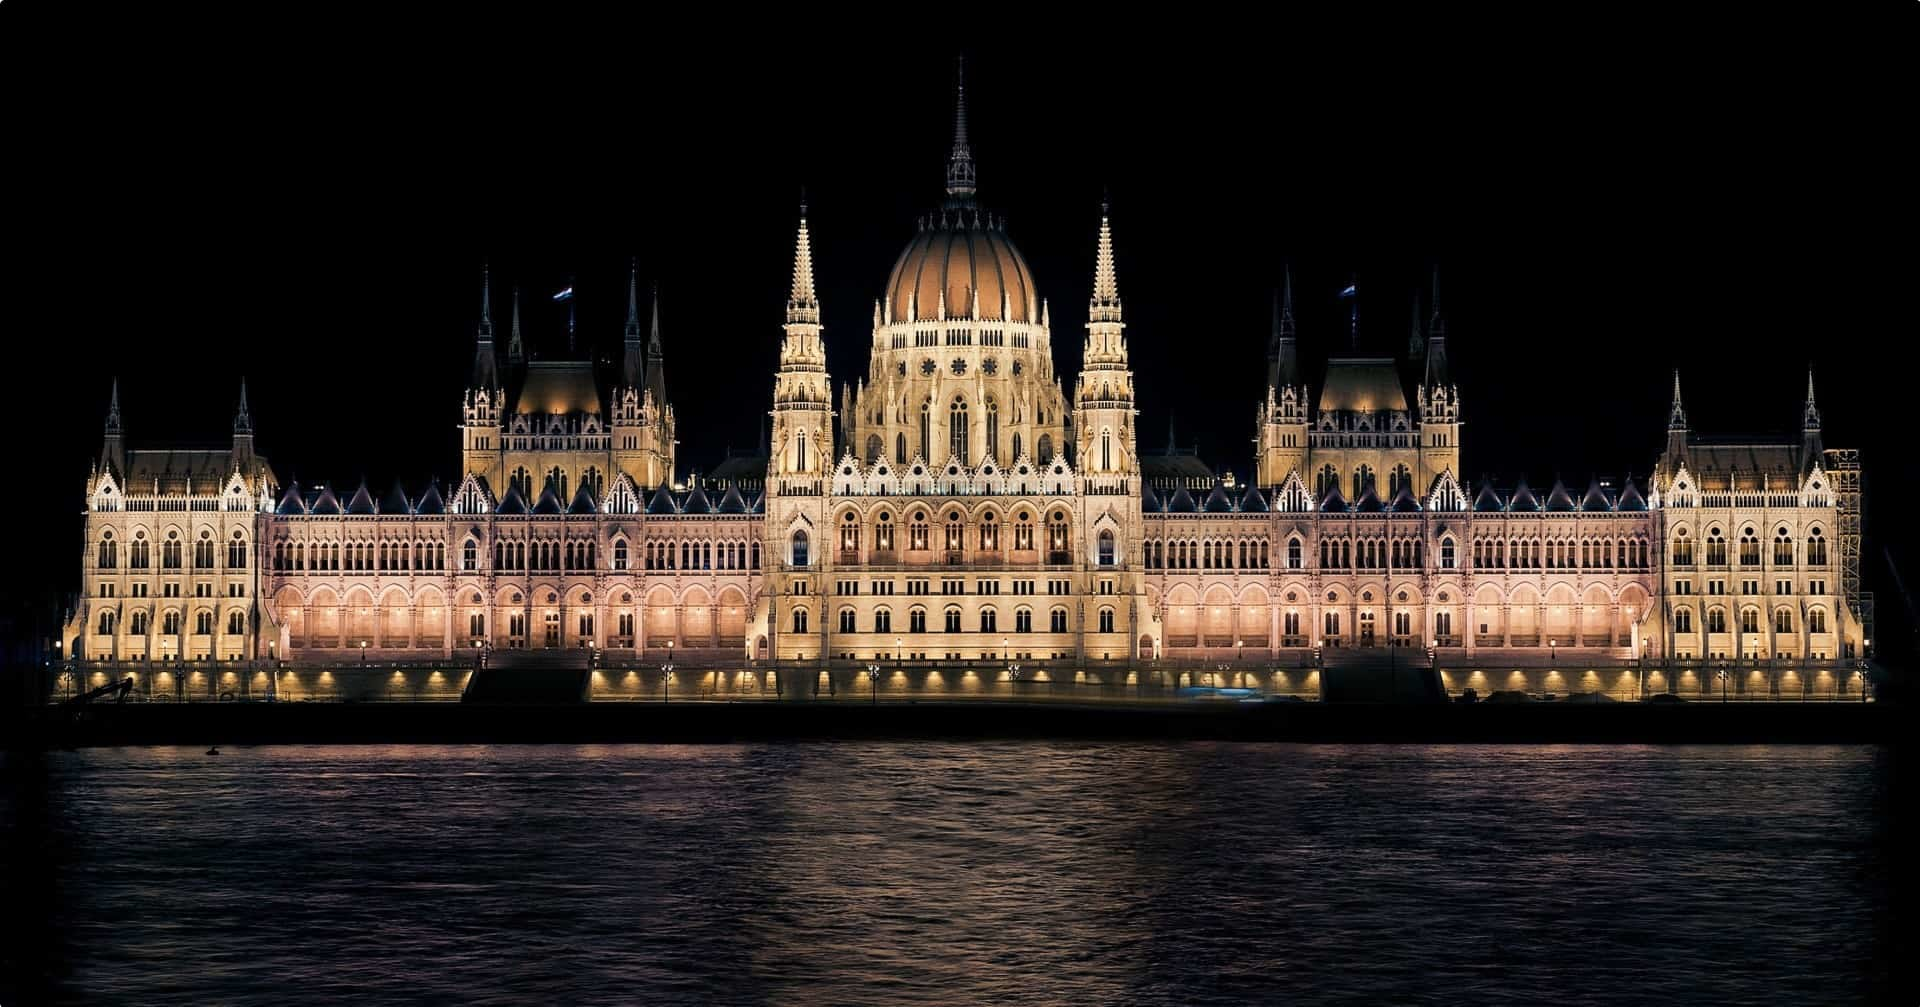 The Parliament building at night